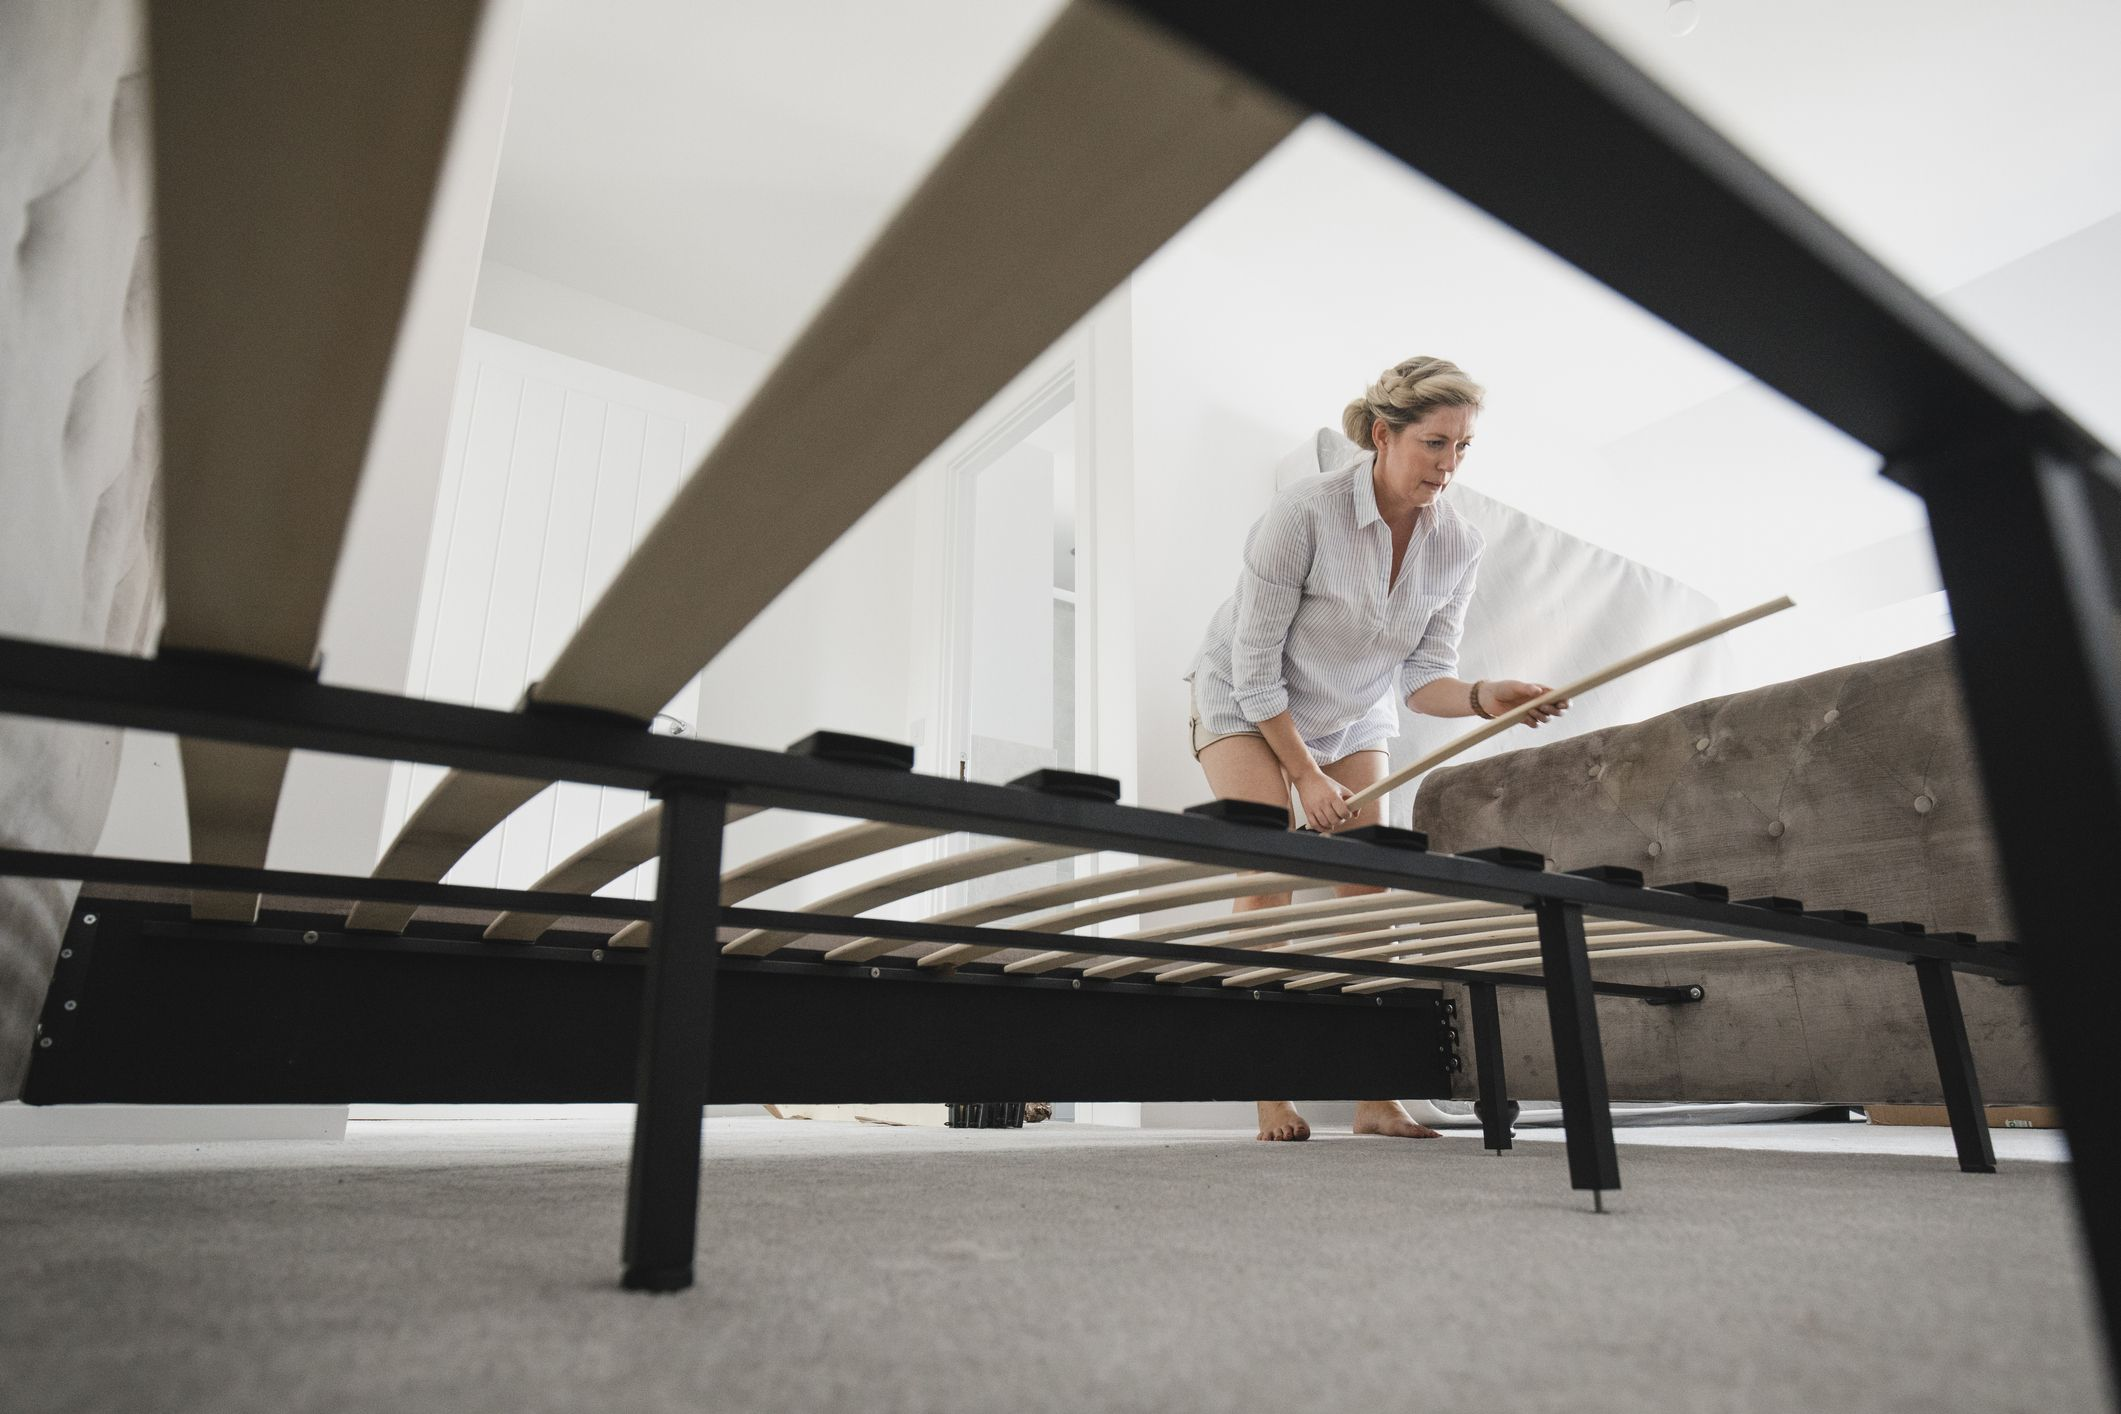 Your Step-by-Step Guide to Building a Platform Bed Frame